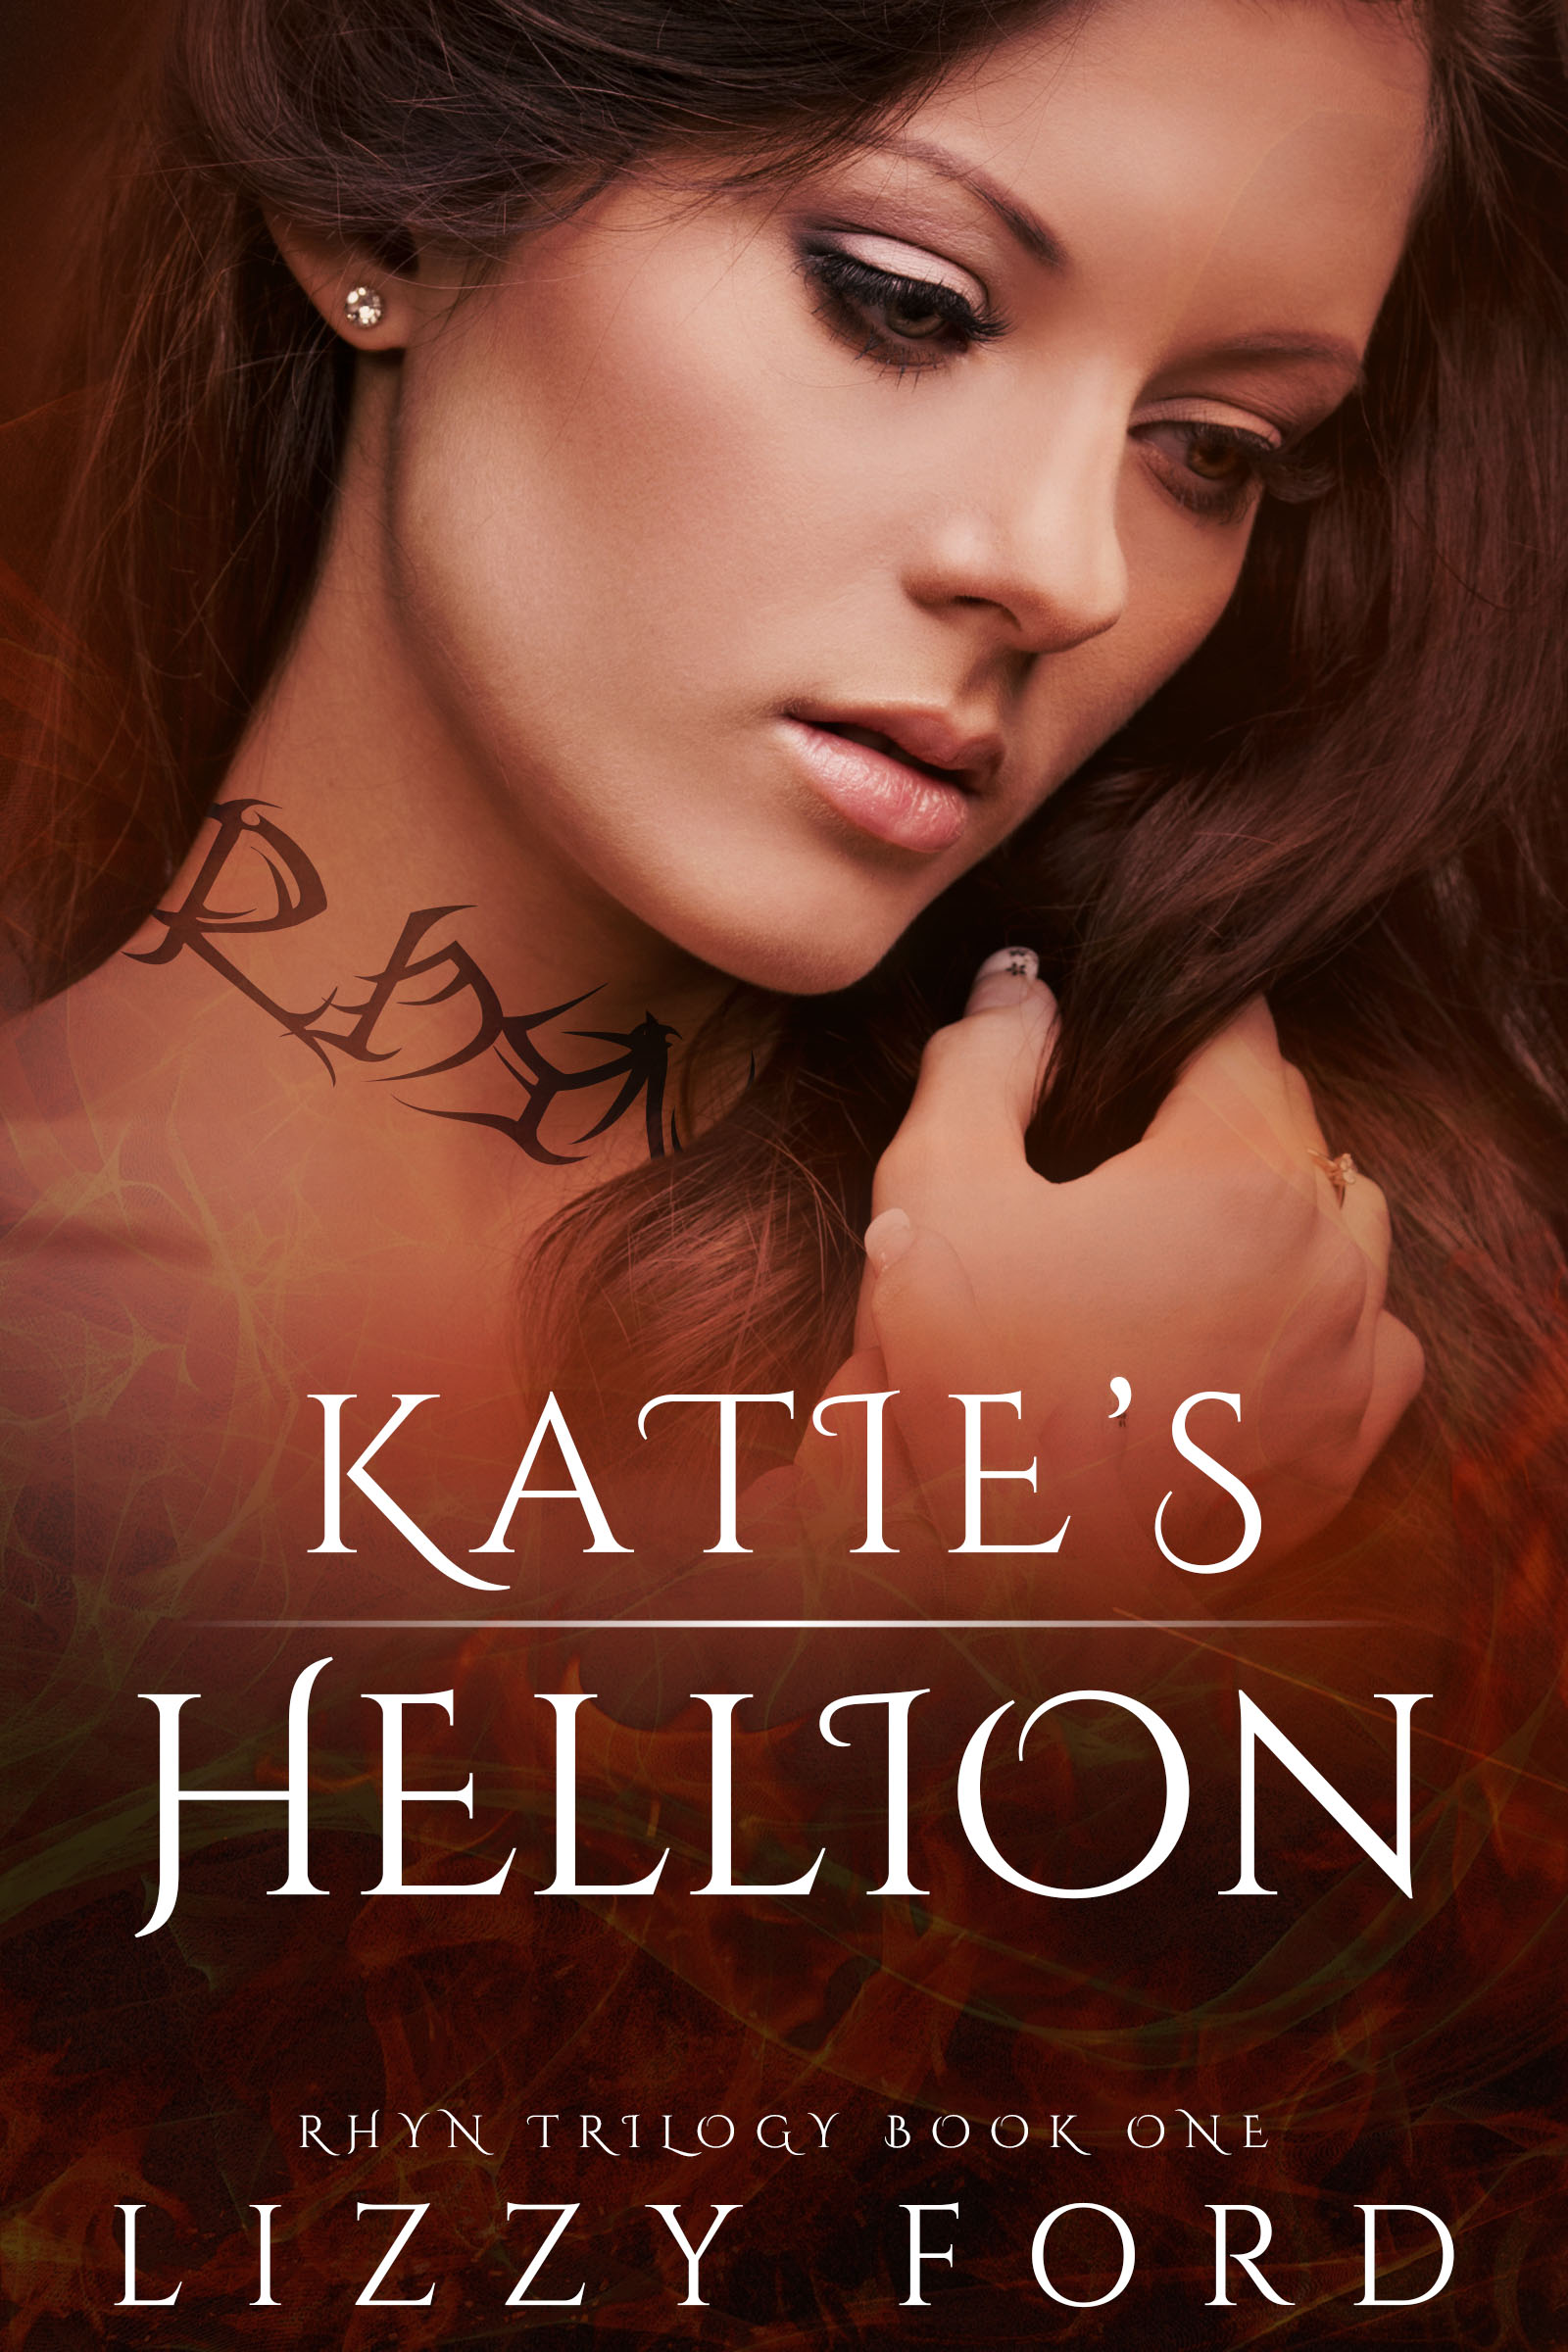 Smashwords romance mdash free ebooks mdash most downloaded first katies hellion rhyn trilogy book one by lizzy ford fandeluxe PDF